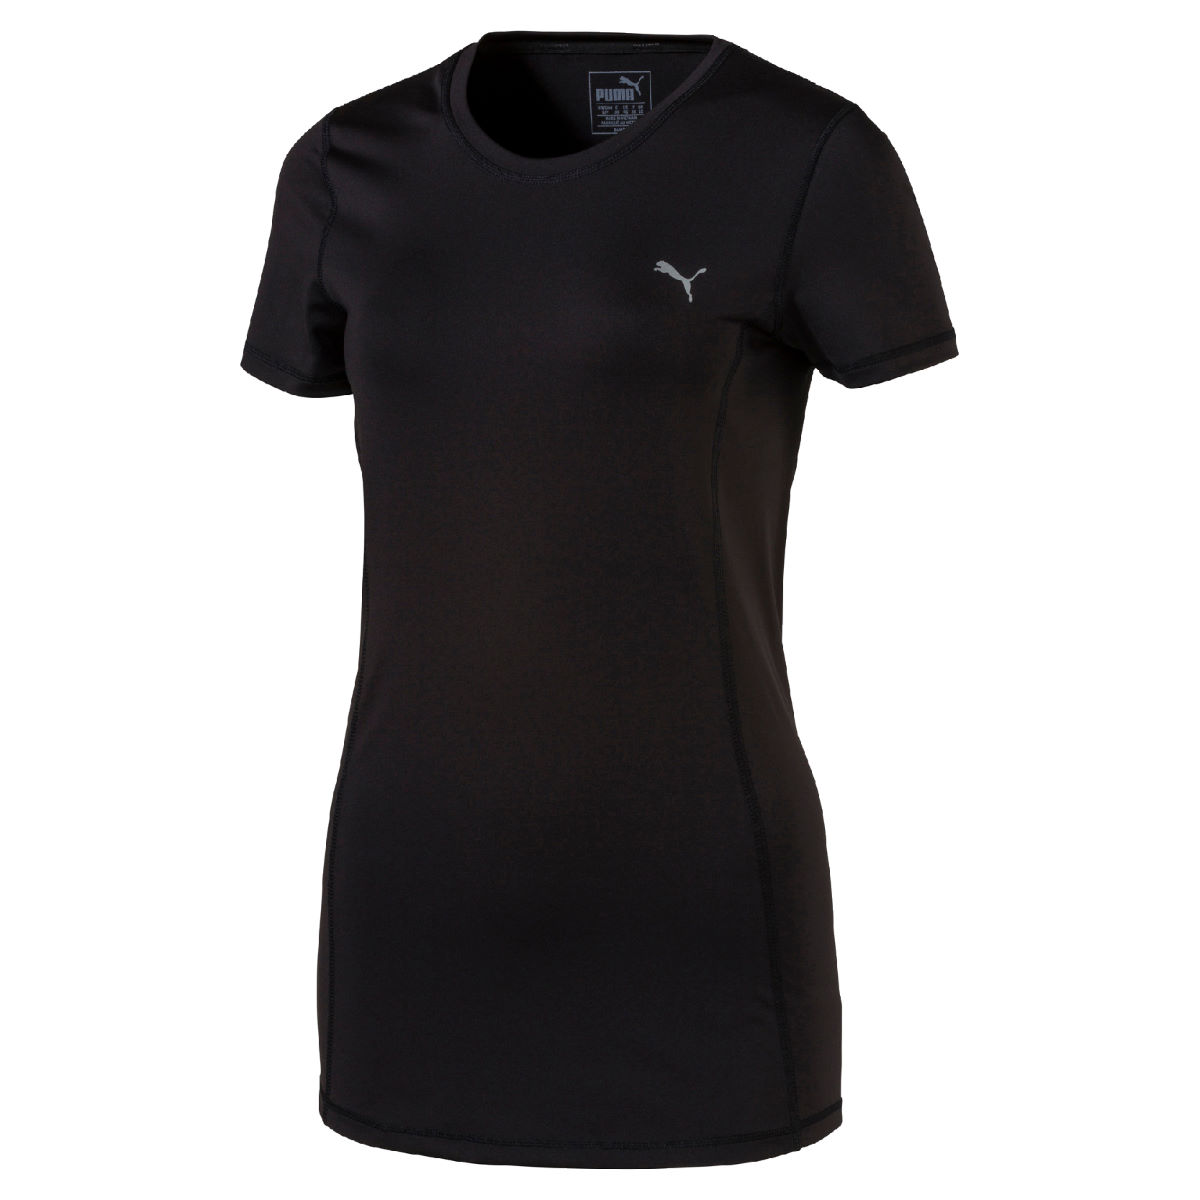 Puma Women's Essential Tee (SS17) - UK 14 Puma Black